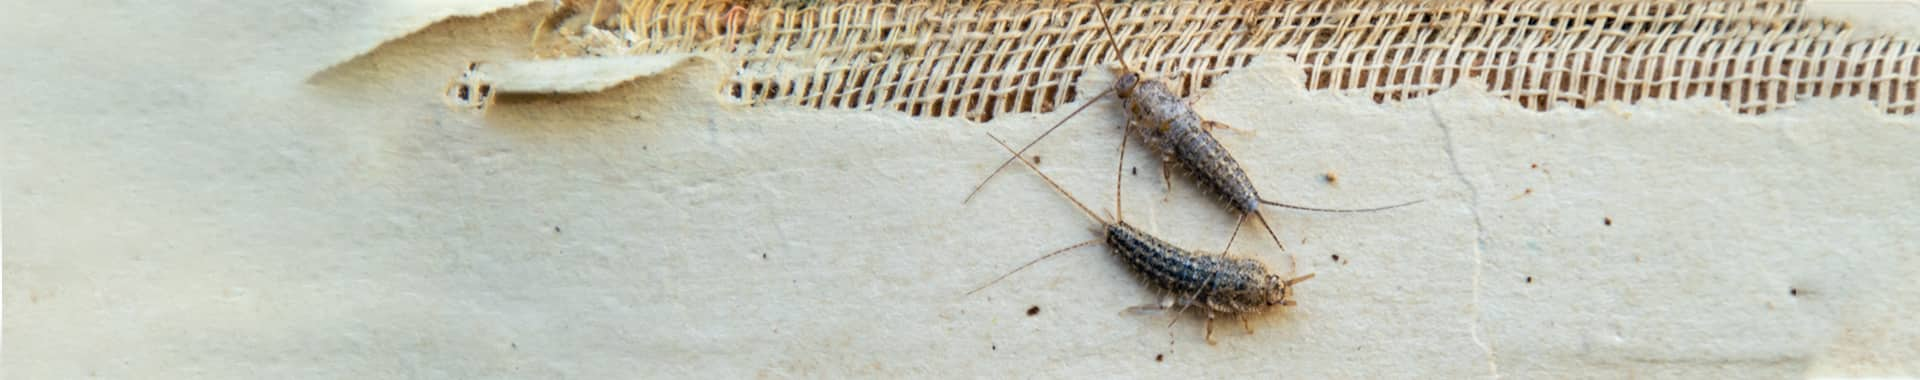 two silverfish on torn paper